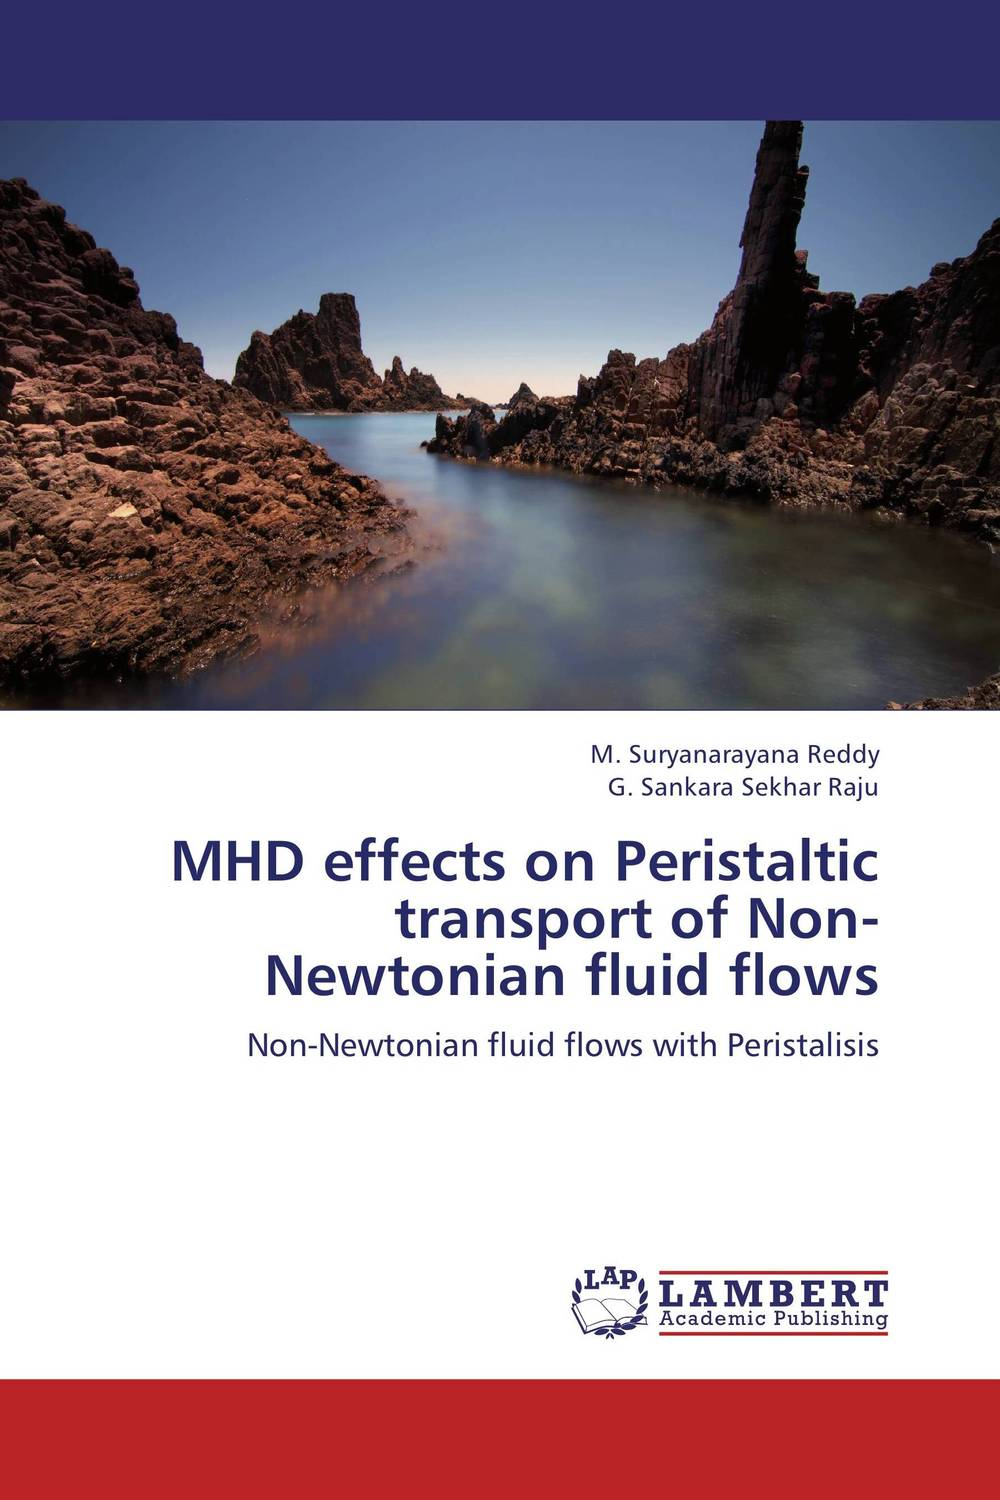 MHD effects on Peristaltic transport of Non-Newtonian fluid flows mhd effects on peristaltic transport of non newtonian fluid flows